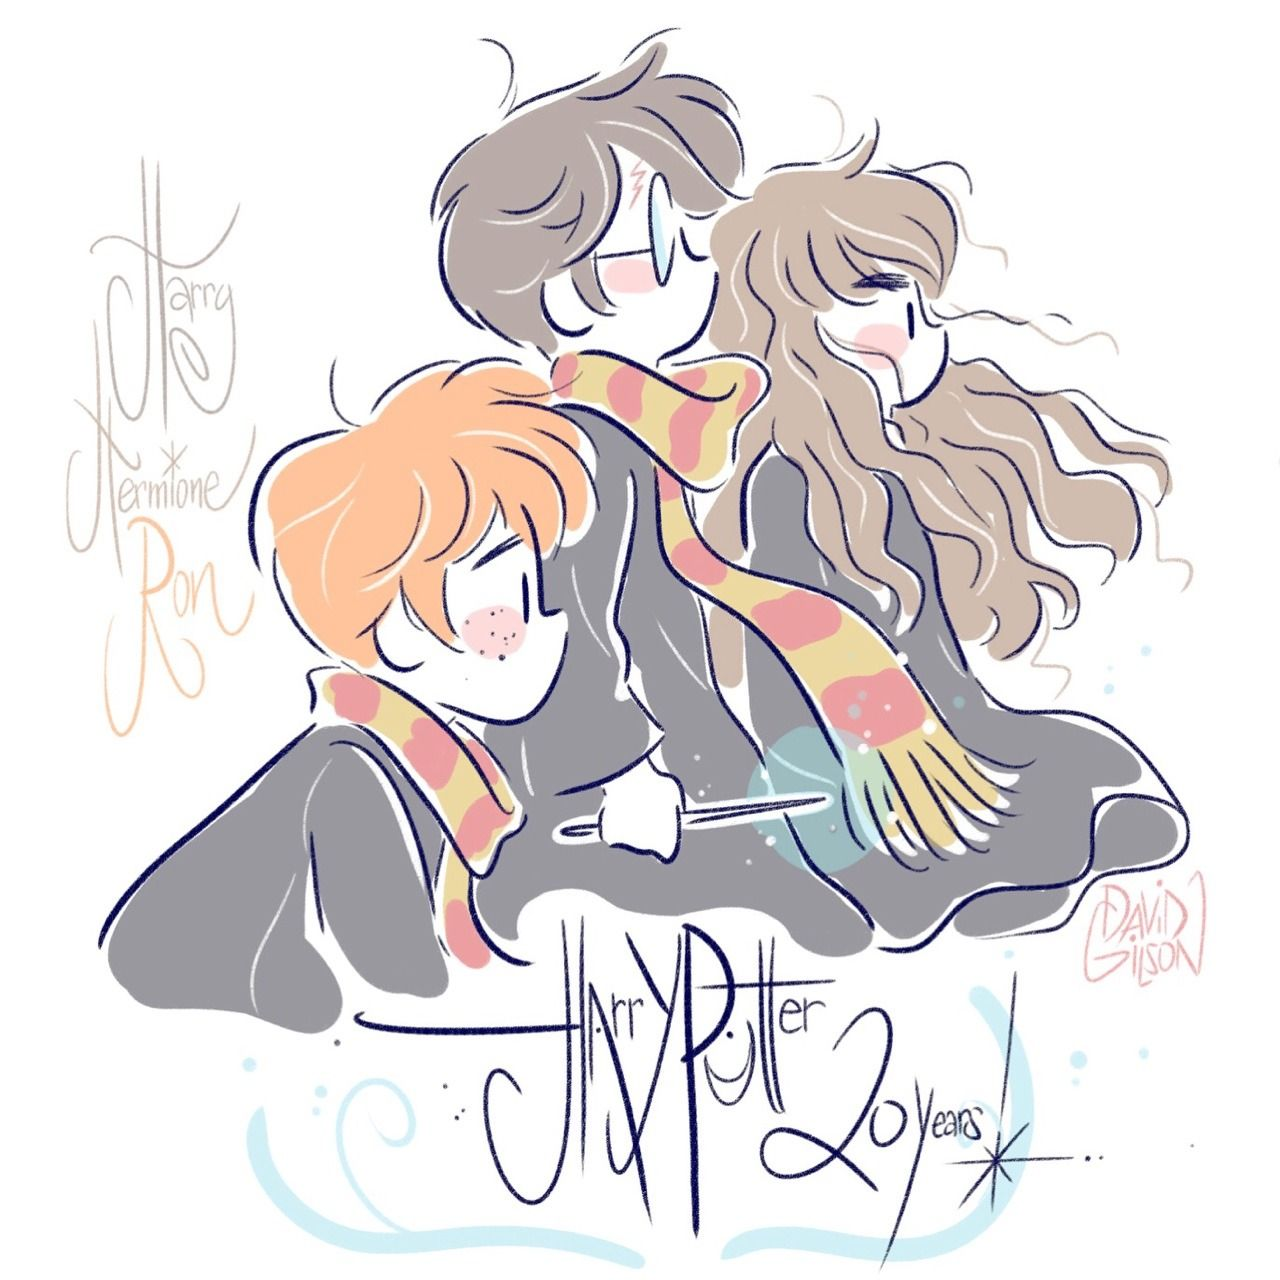 Harry Potter 20th anniversary Drawing by David Gilson # ...